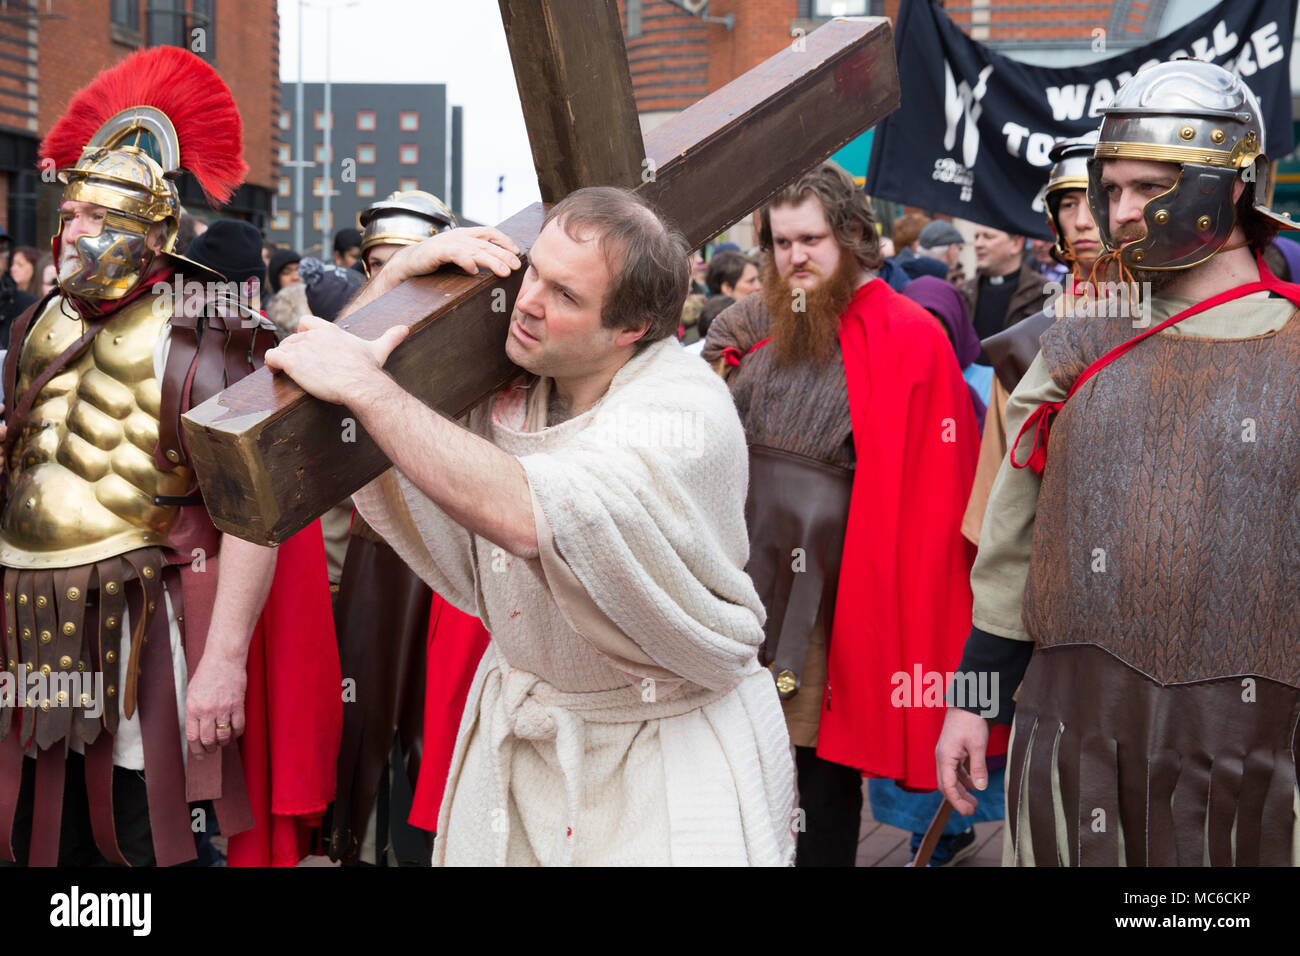 The annual Good Friday Walk of Witness taking place in Walsall Town Centre. Actors play the part of telling the story of the death of Jesus. - Stock Image